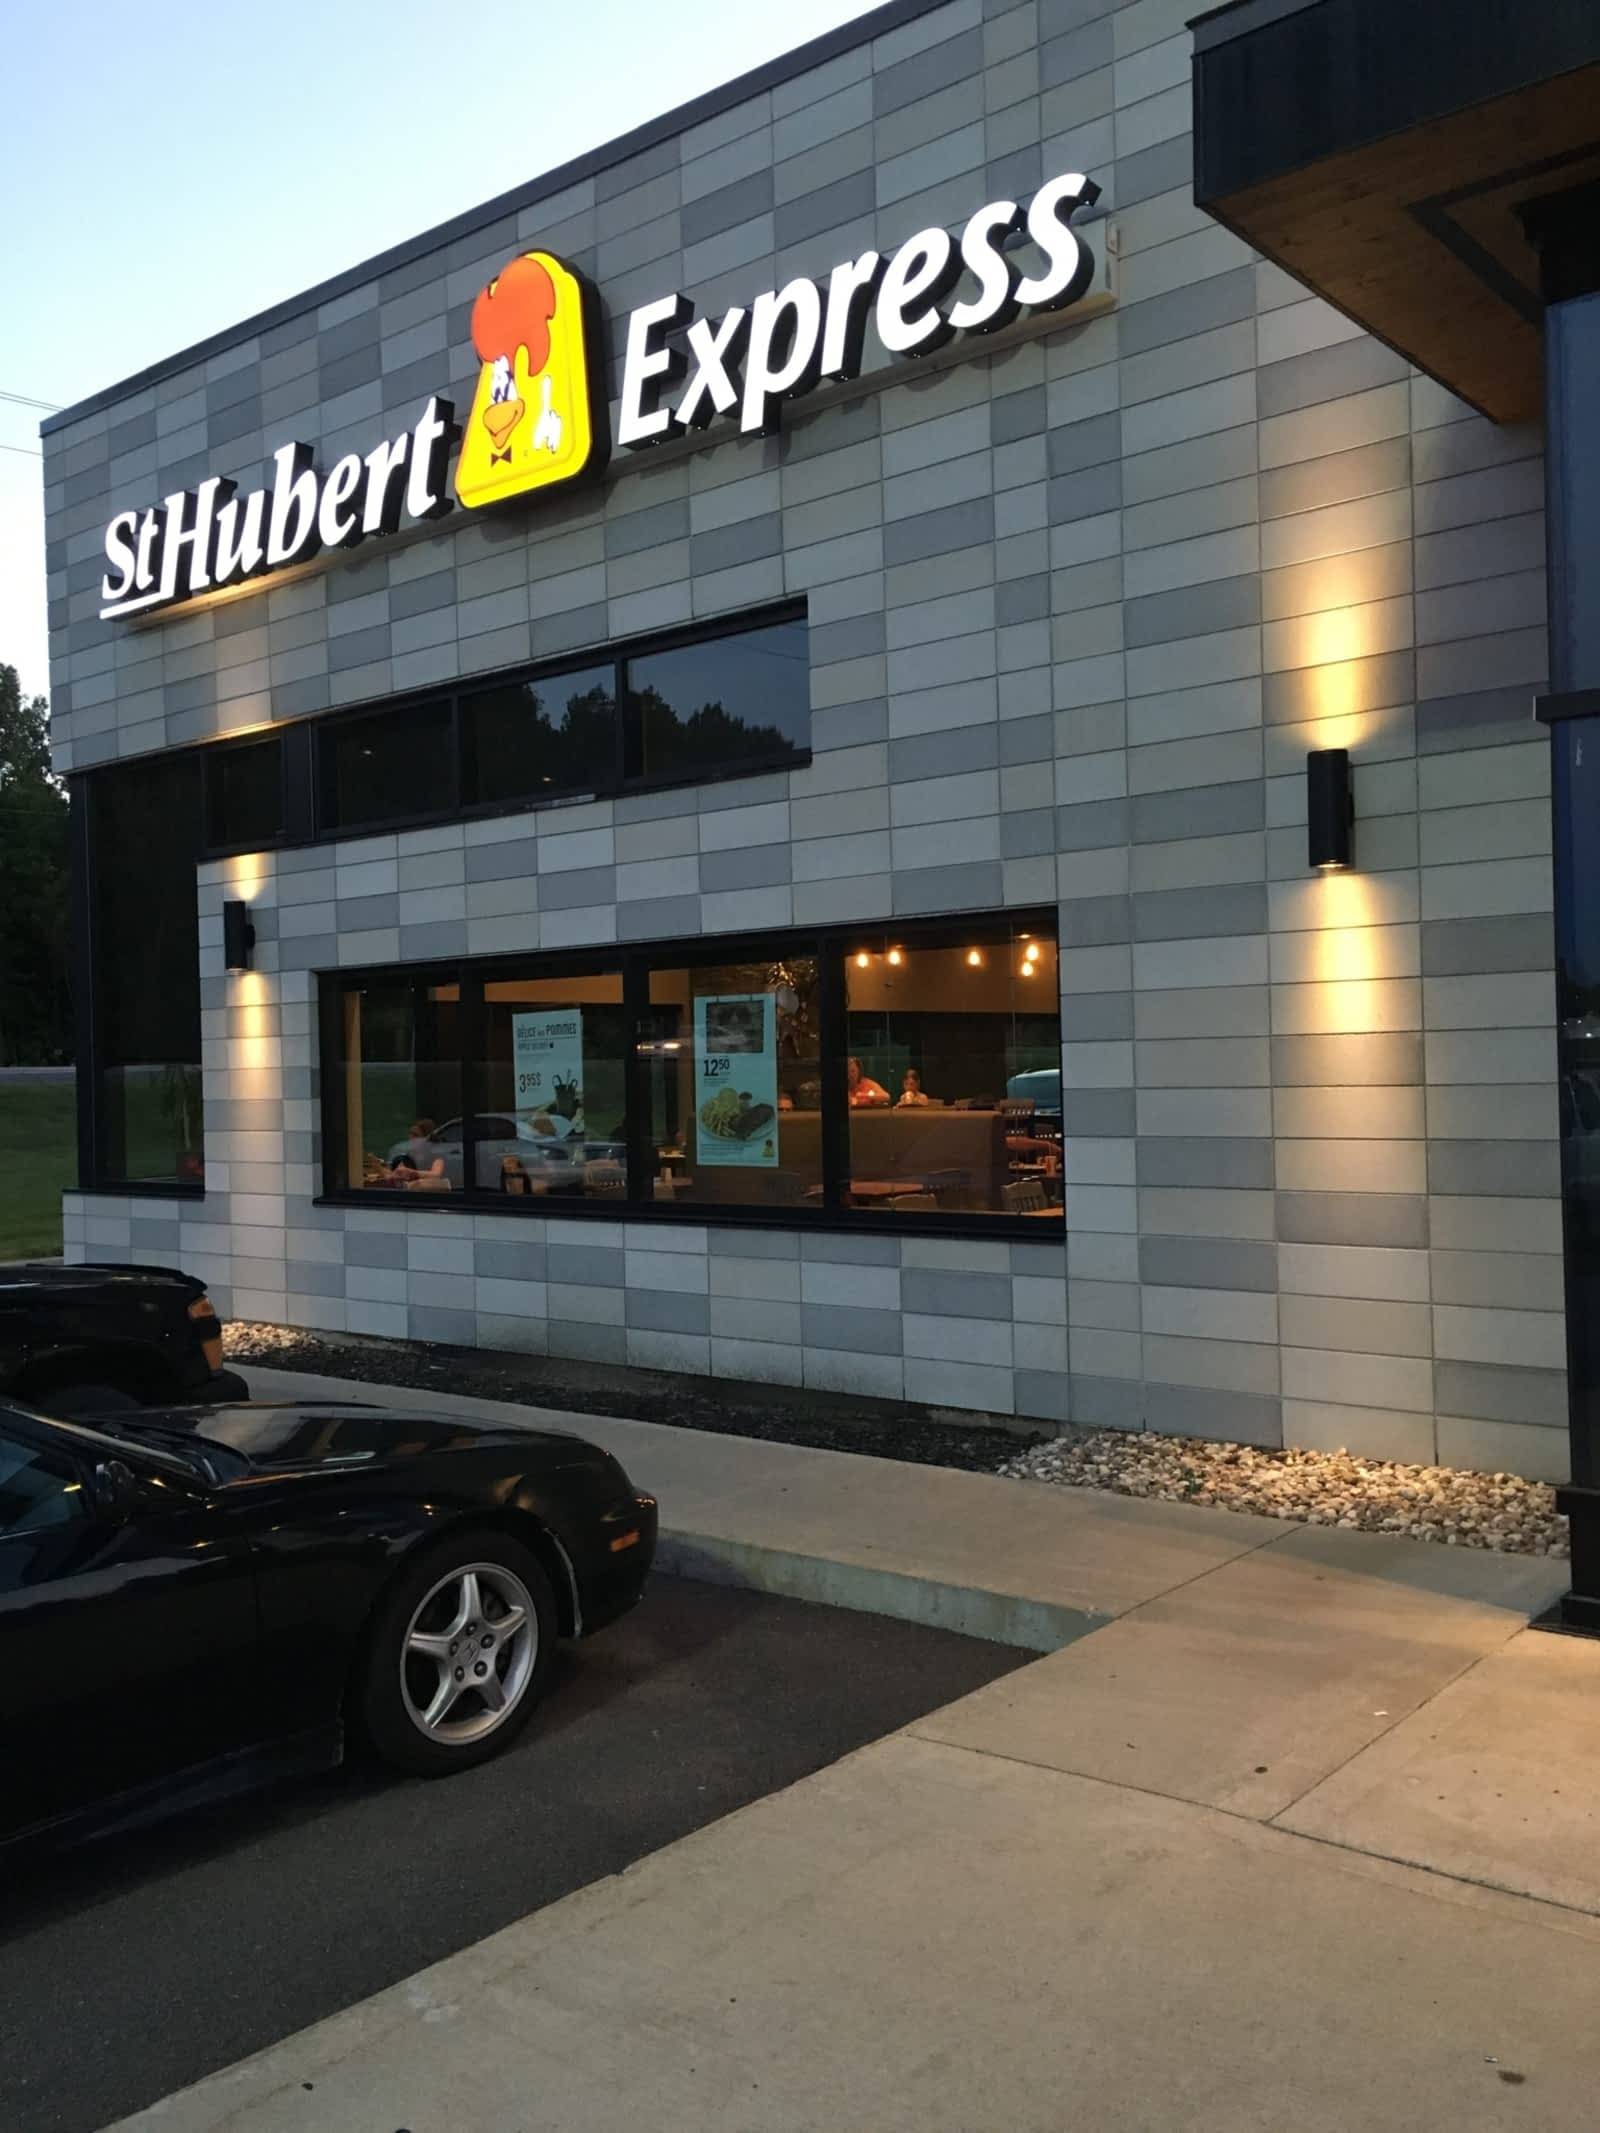 St Hubert Phone Number St Hubert Express Opening Hours 456 County Rd 17 Hawkesbury On